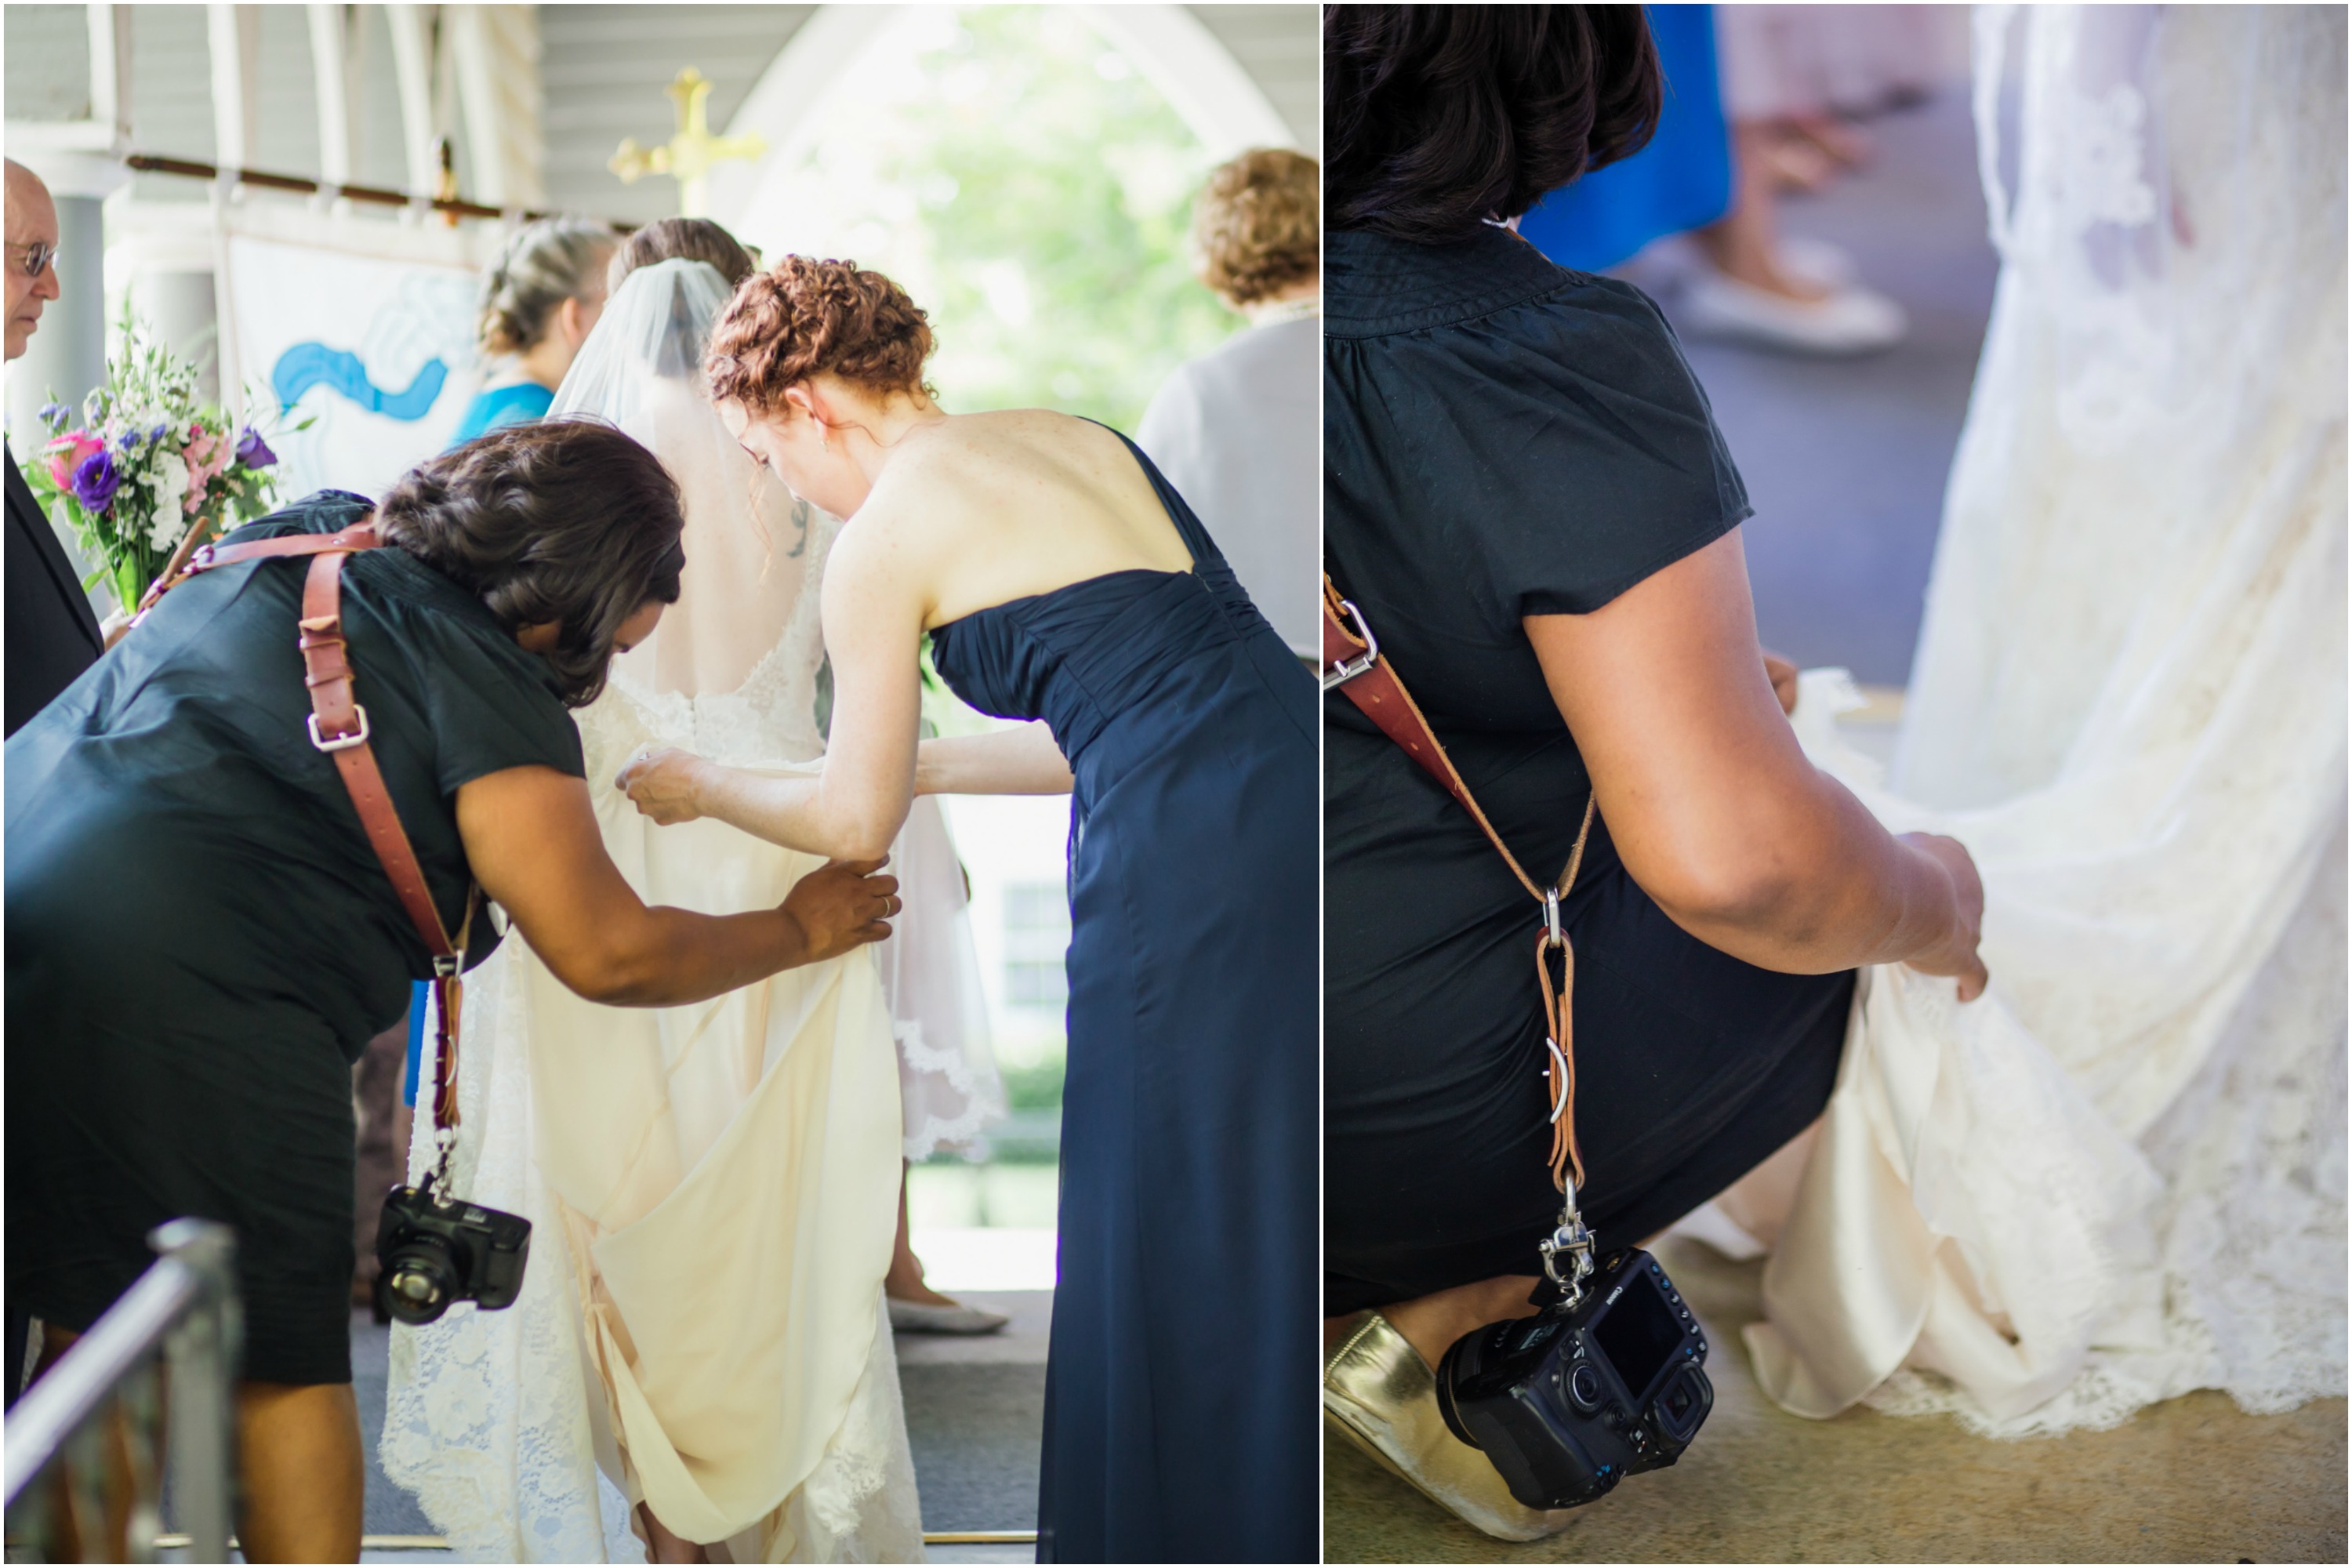 photographer bustling brides dress